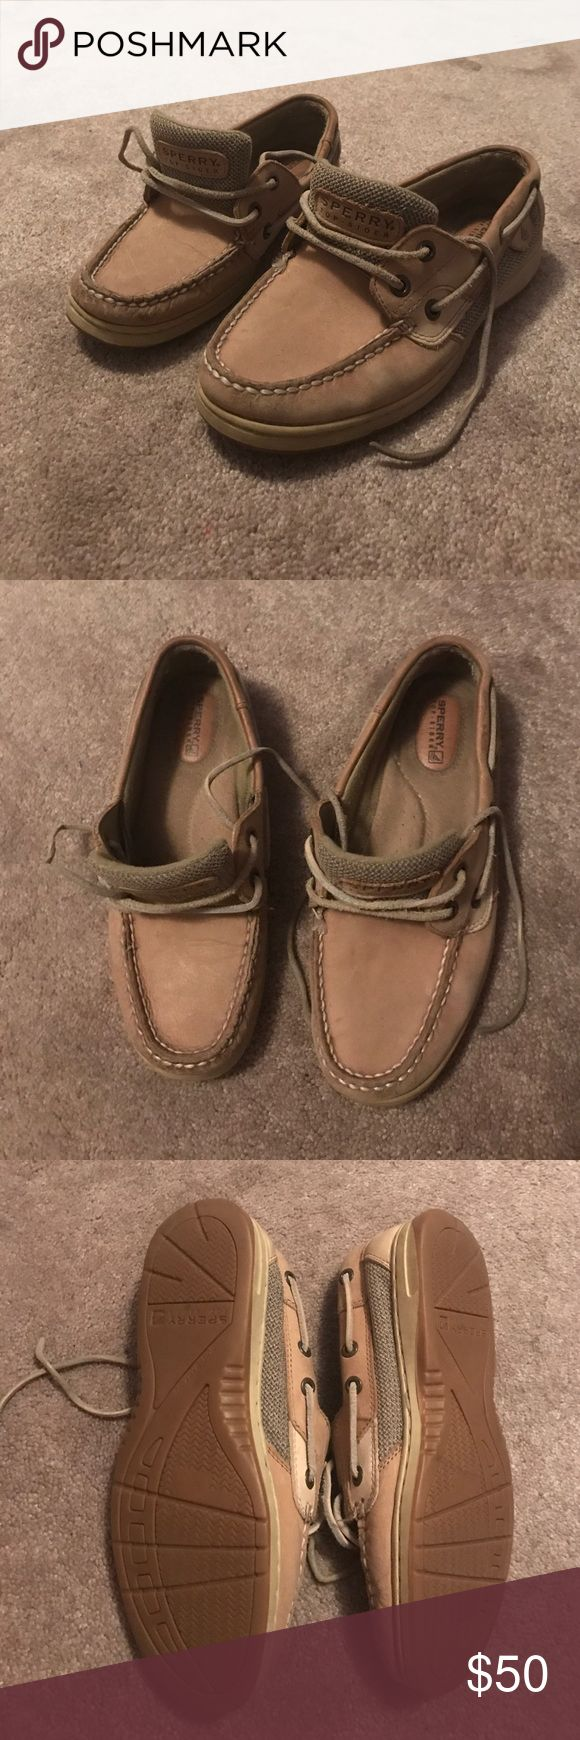 Women's sperry boat shoe Sperry topsider women's boat shoes, lightly worn Sperry Top-Sider Shoes